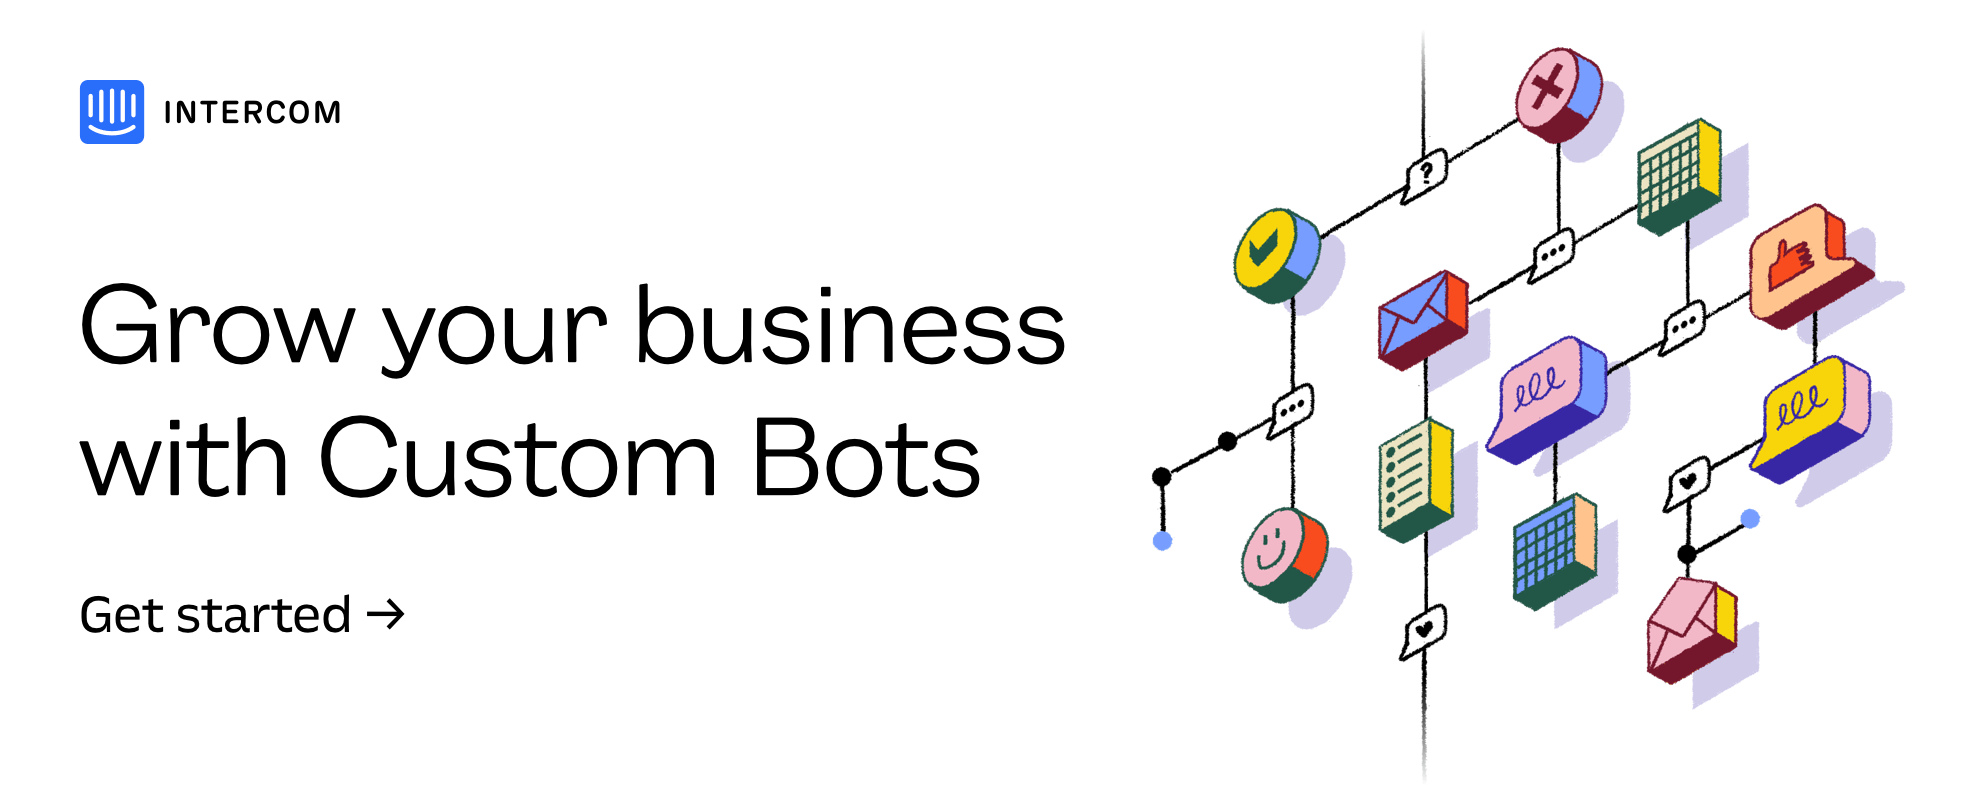 Get started with Custom Bots